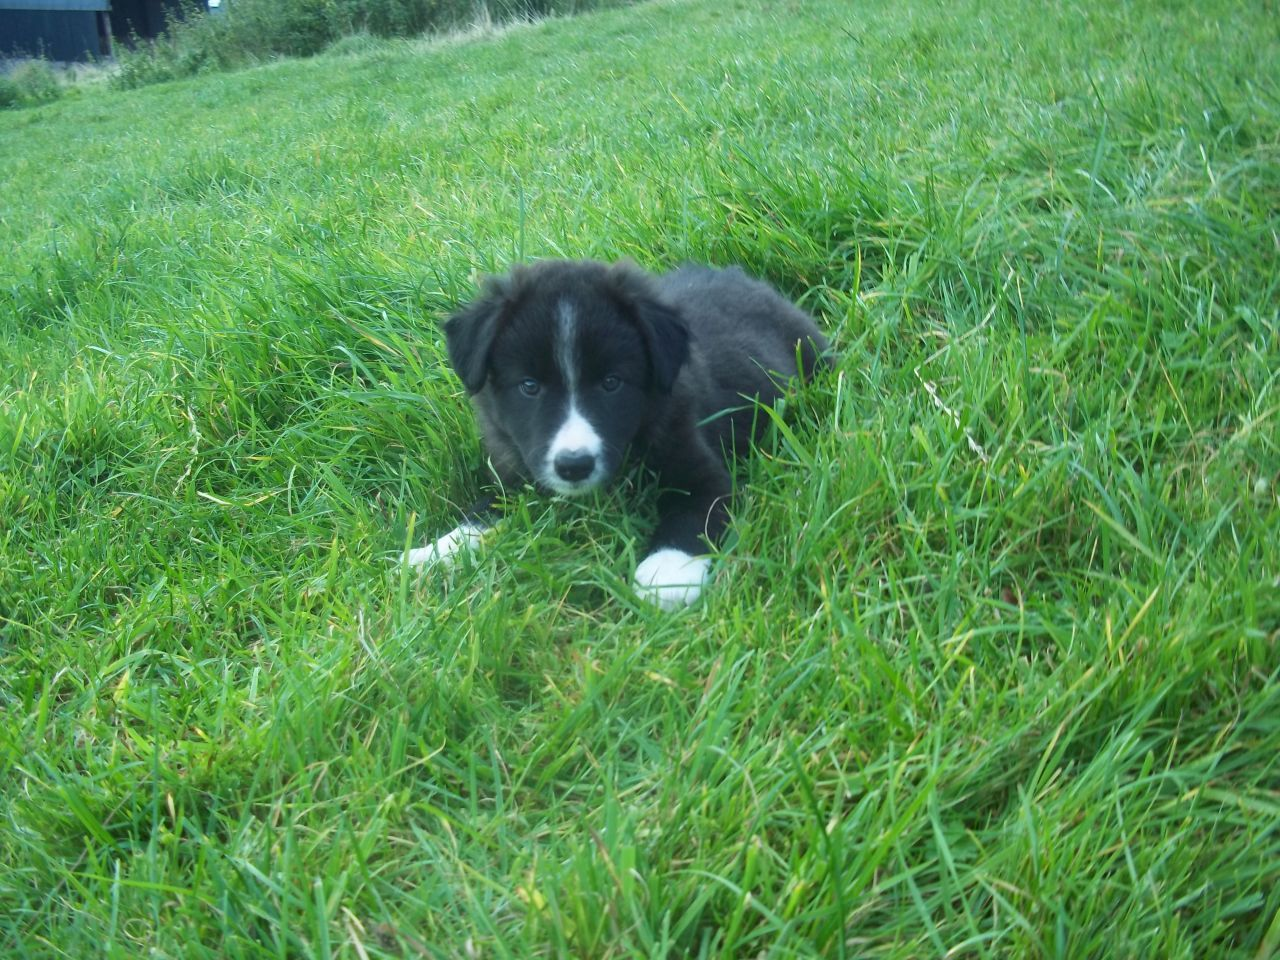 welsh sheepdog photo | Black&White Welsh sheepdog puppy | Llanwrda, Carmarthenshire ...